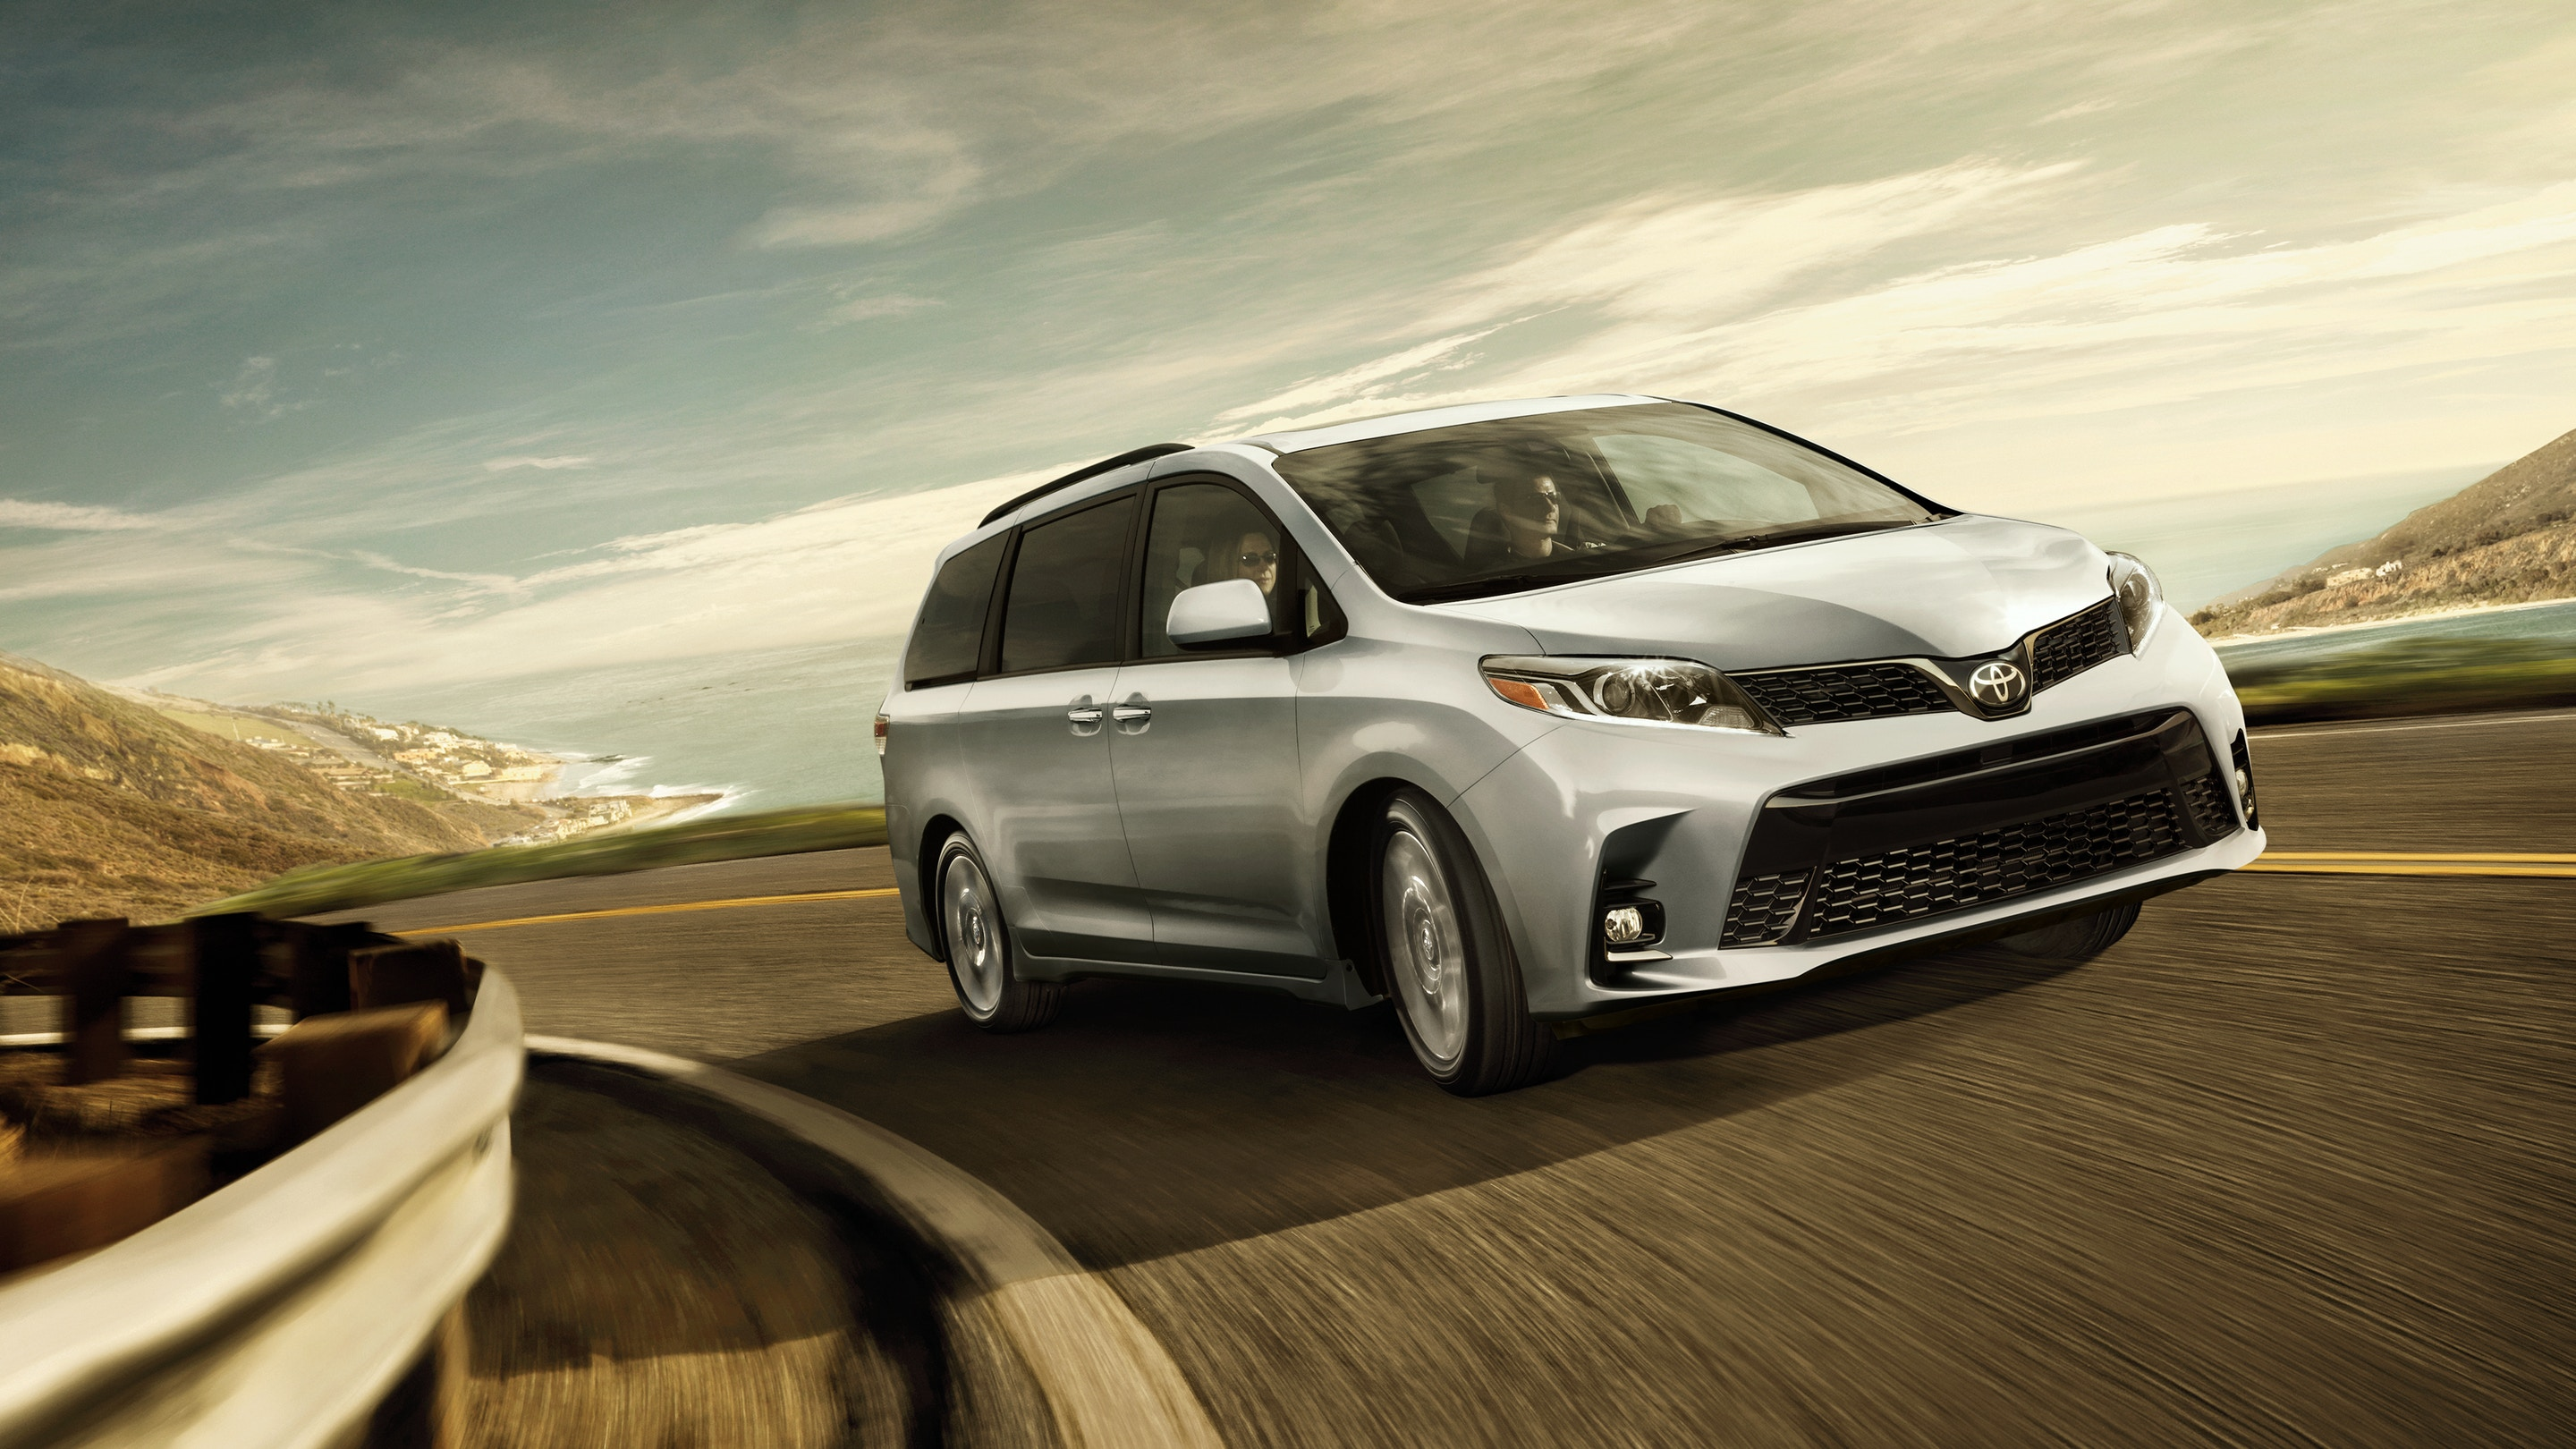 Toyota Sienna Service Manual: A Remote Control System does not Operate